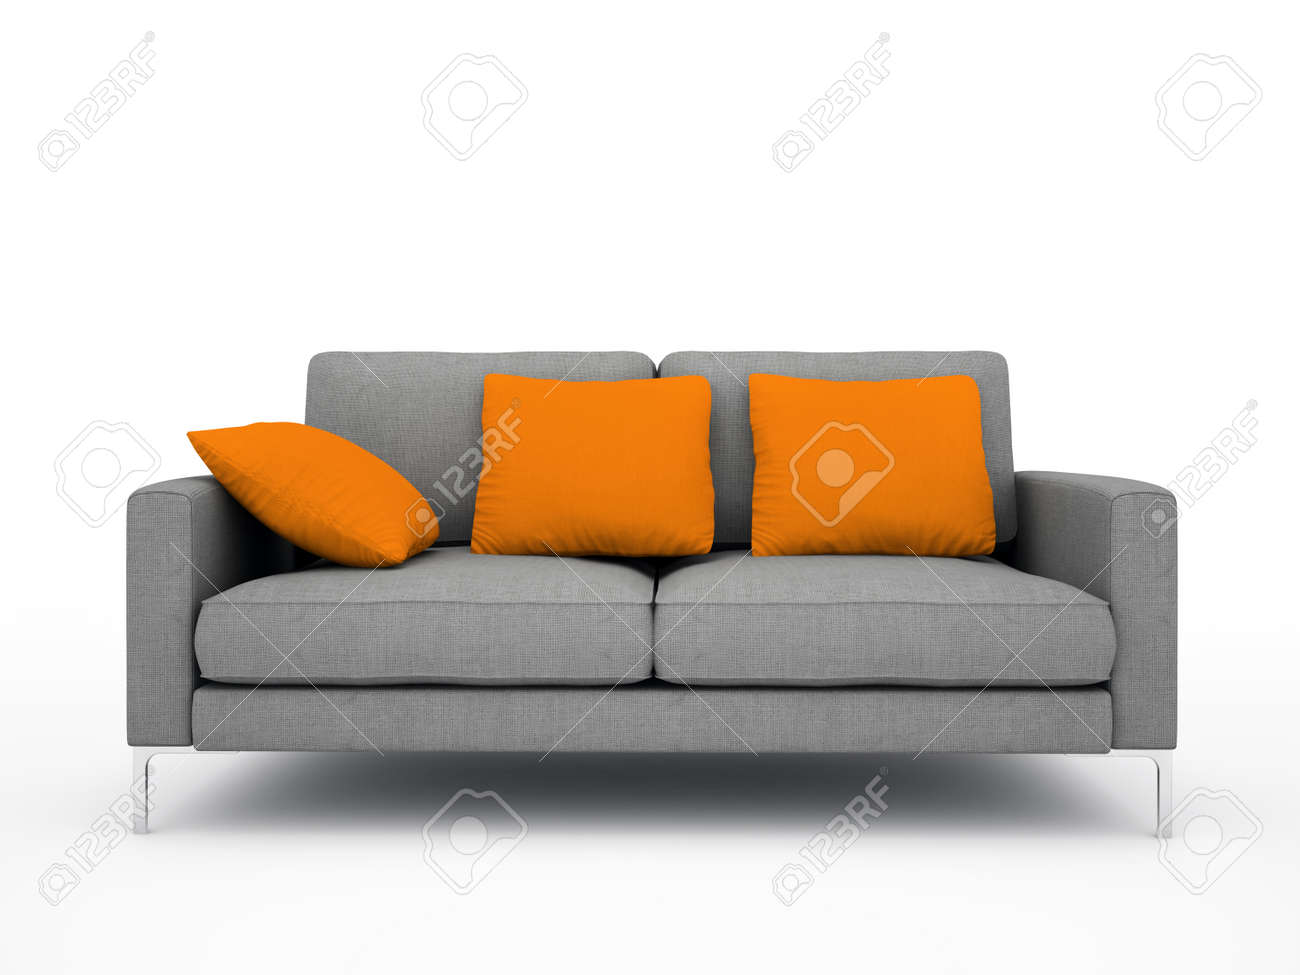 Modern Grey Sofa With Orange Pillows Isolated On White Background ...